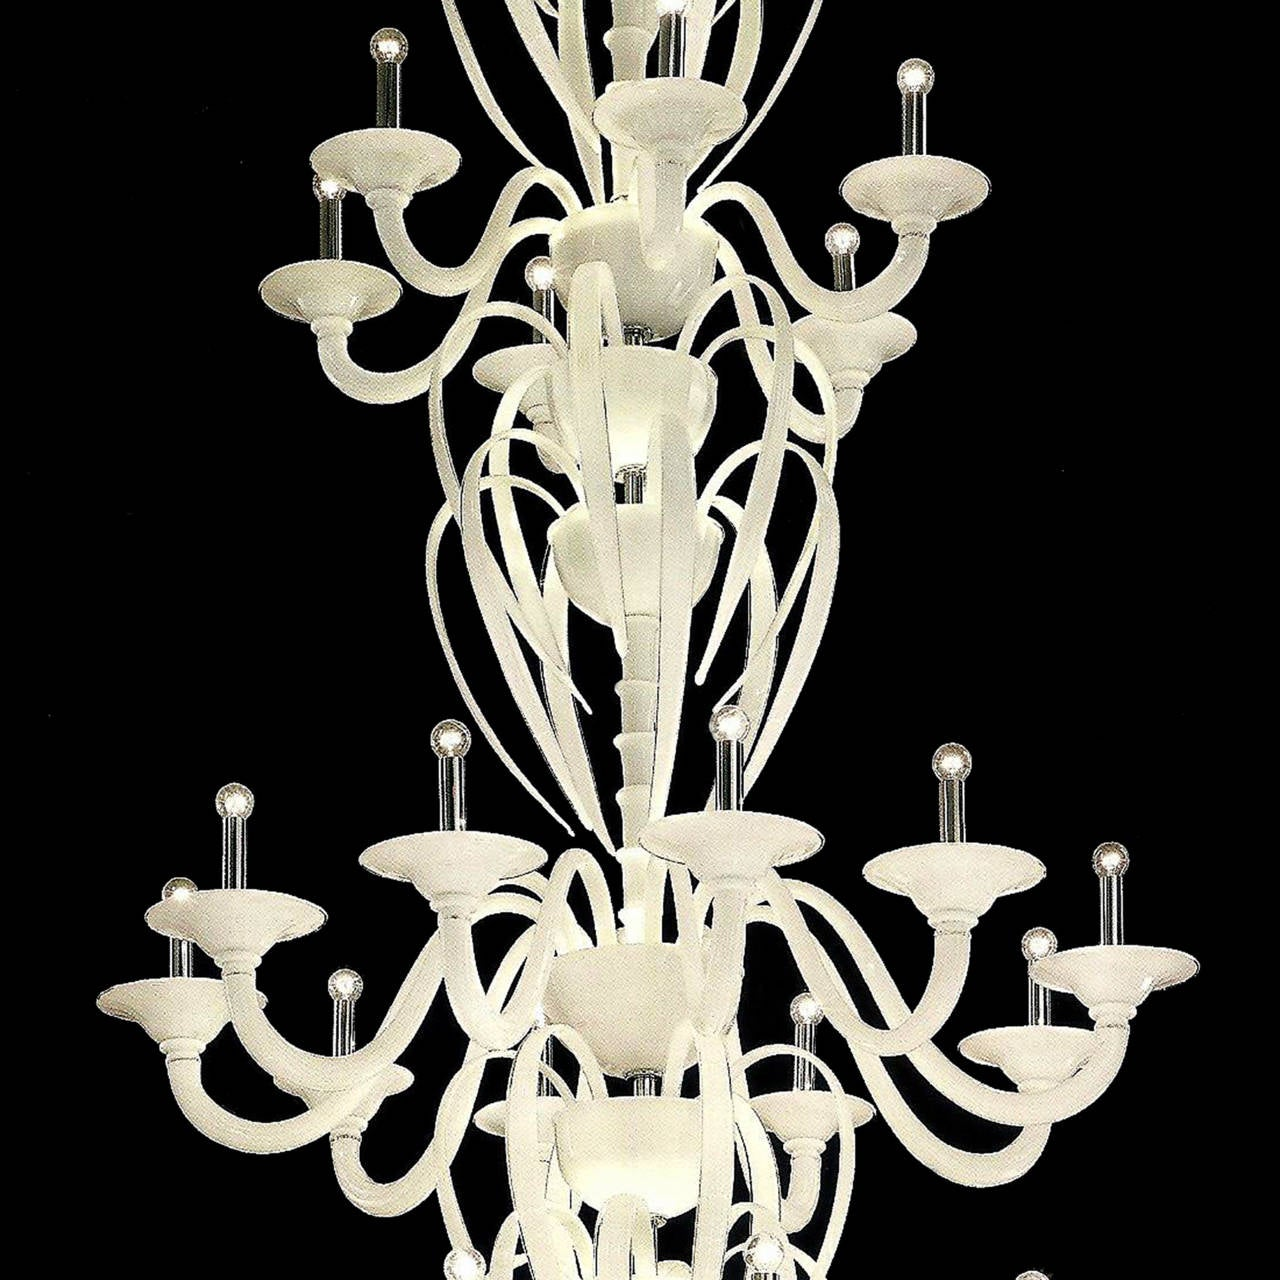 Monumental Mid-Century Modern Neoclassic White Murano /Venetian Glass Chandelier In Excellent Condition For Sale In New York, NY